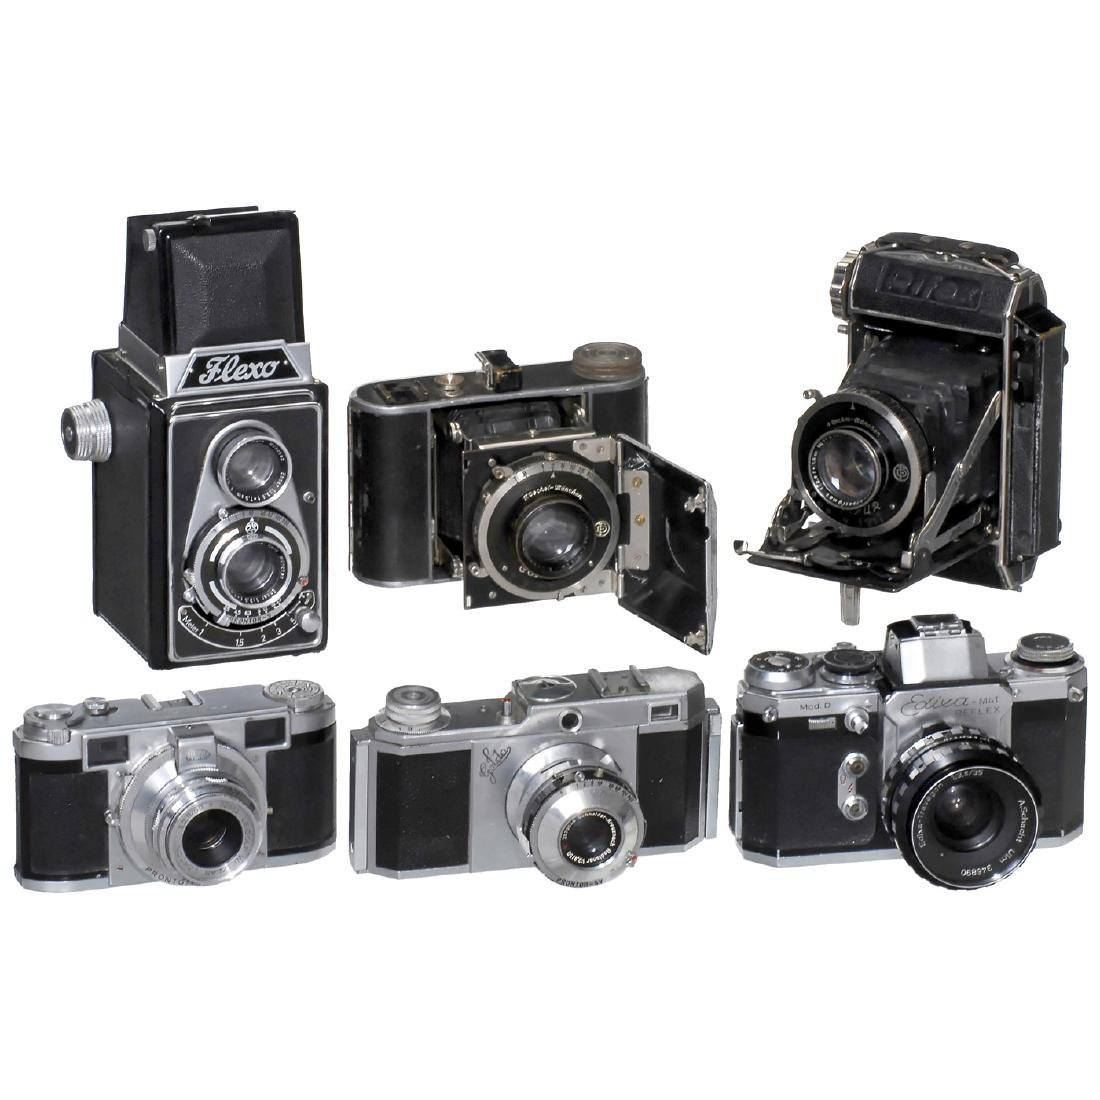 6 Cameras from Germany